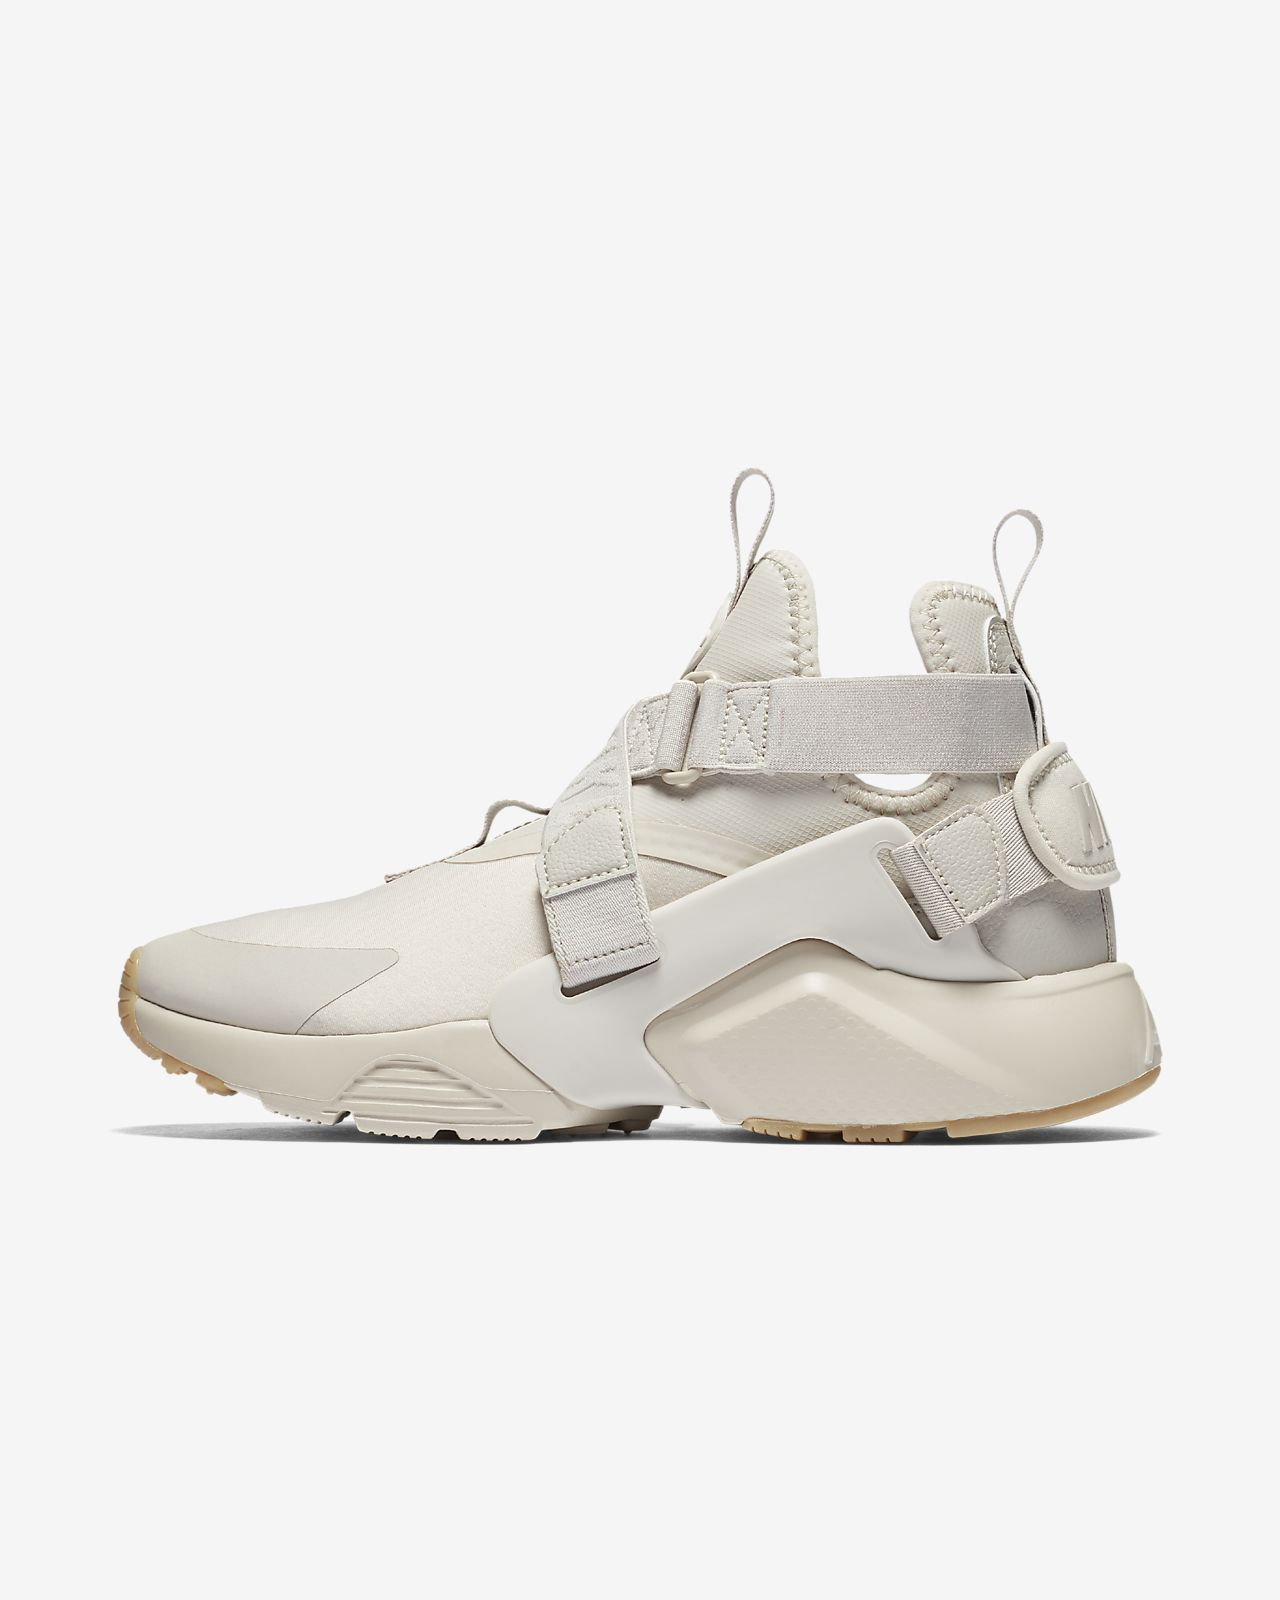 Scarpe donna NIKE Nike Air Huarache City in neoprene bianco AH6787001